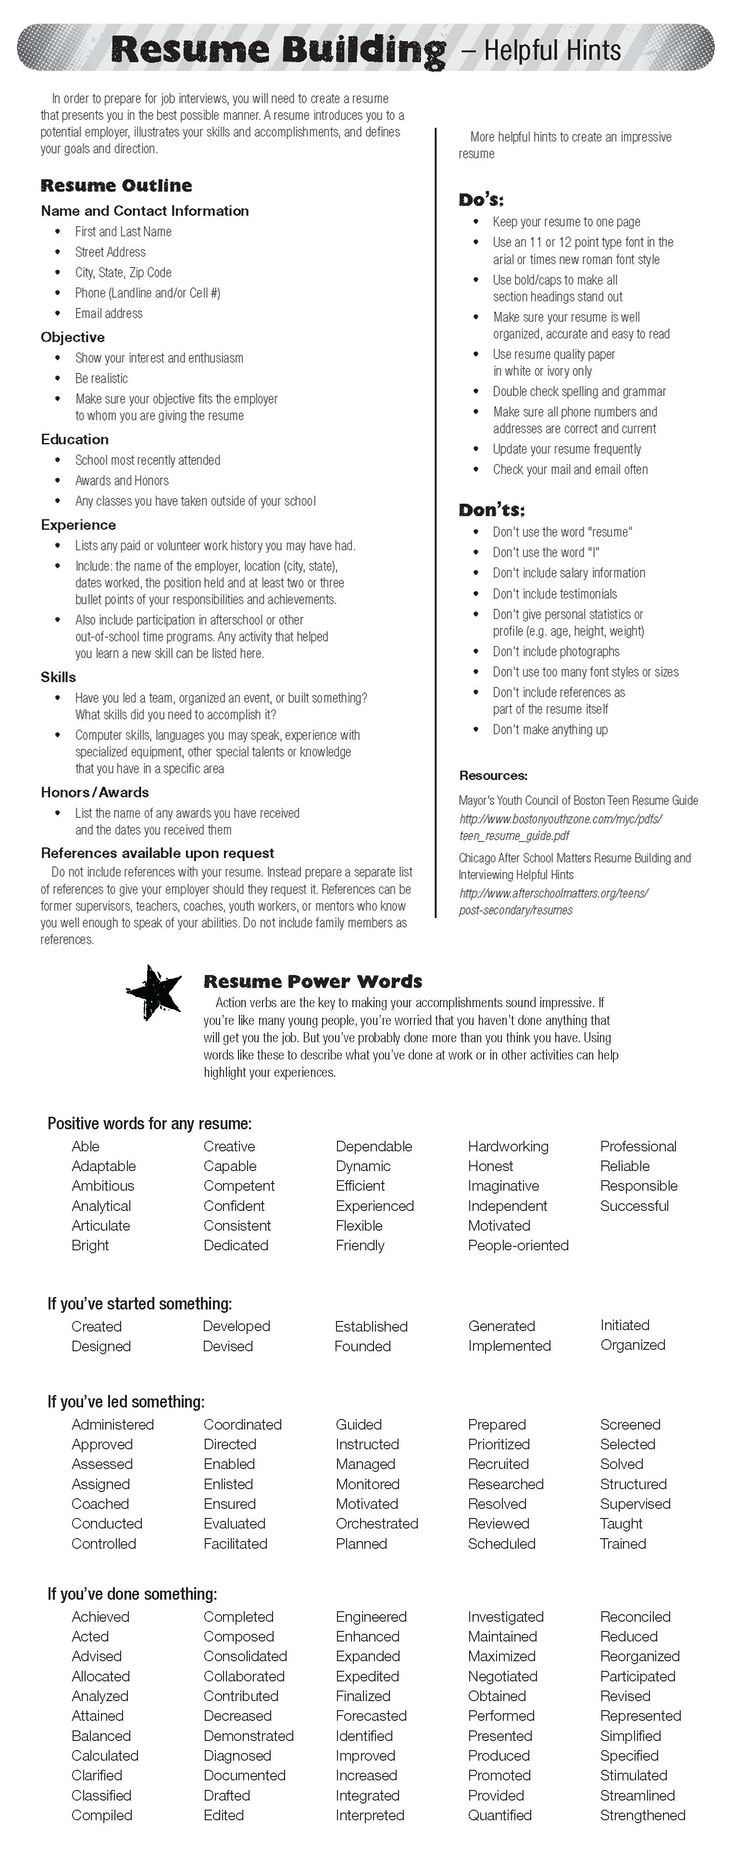 Picnictoimpeachus  Gorgeous  Ideas About Resume On Pinterest  Cv Format Resume  With Fetching Check Out Todays Resume Building Tips Resume Resumepowerwords With Beauteous Best Objective For Resume Also Template Resume In Addition Sample College Resume And Online Resume Maker As Well As What A Resume Should Look Like Additionally Resume For No Experience From Pinterestcom With Picnictoimpeachus  Fetching  Ideas About Resume On Pinterest  Cv Format Resume  With Beauteous Check Out Todays Resume Building Tips Resume Resumepowerwords And Gorgeous Best Objective For Resume Also Template Resume In Addition Sample College Resume From Pinterestcom